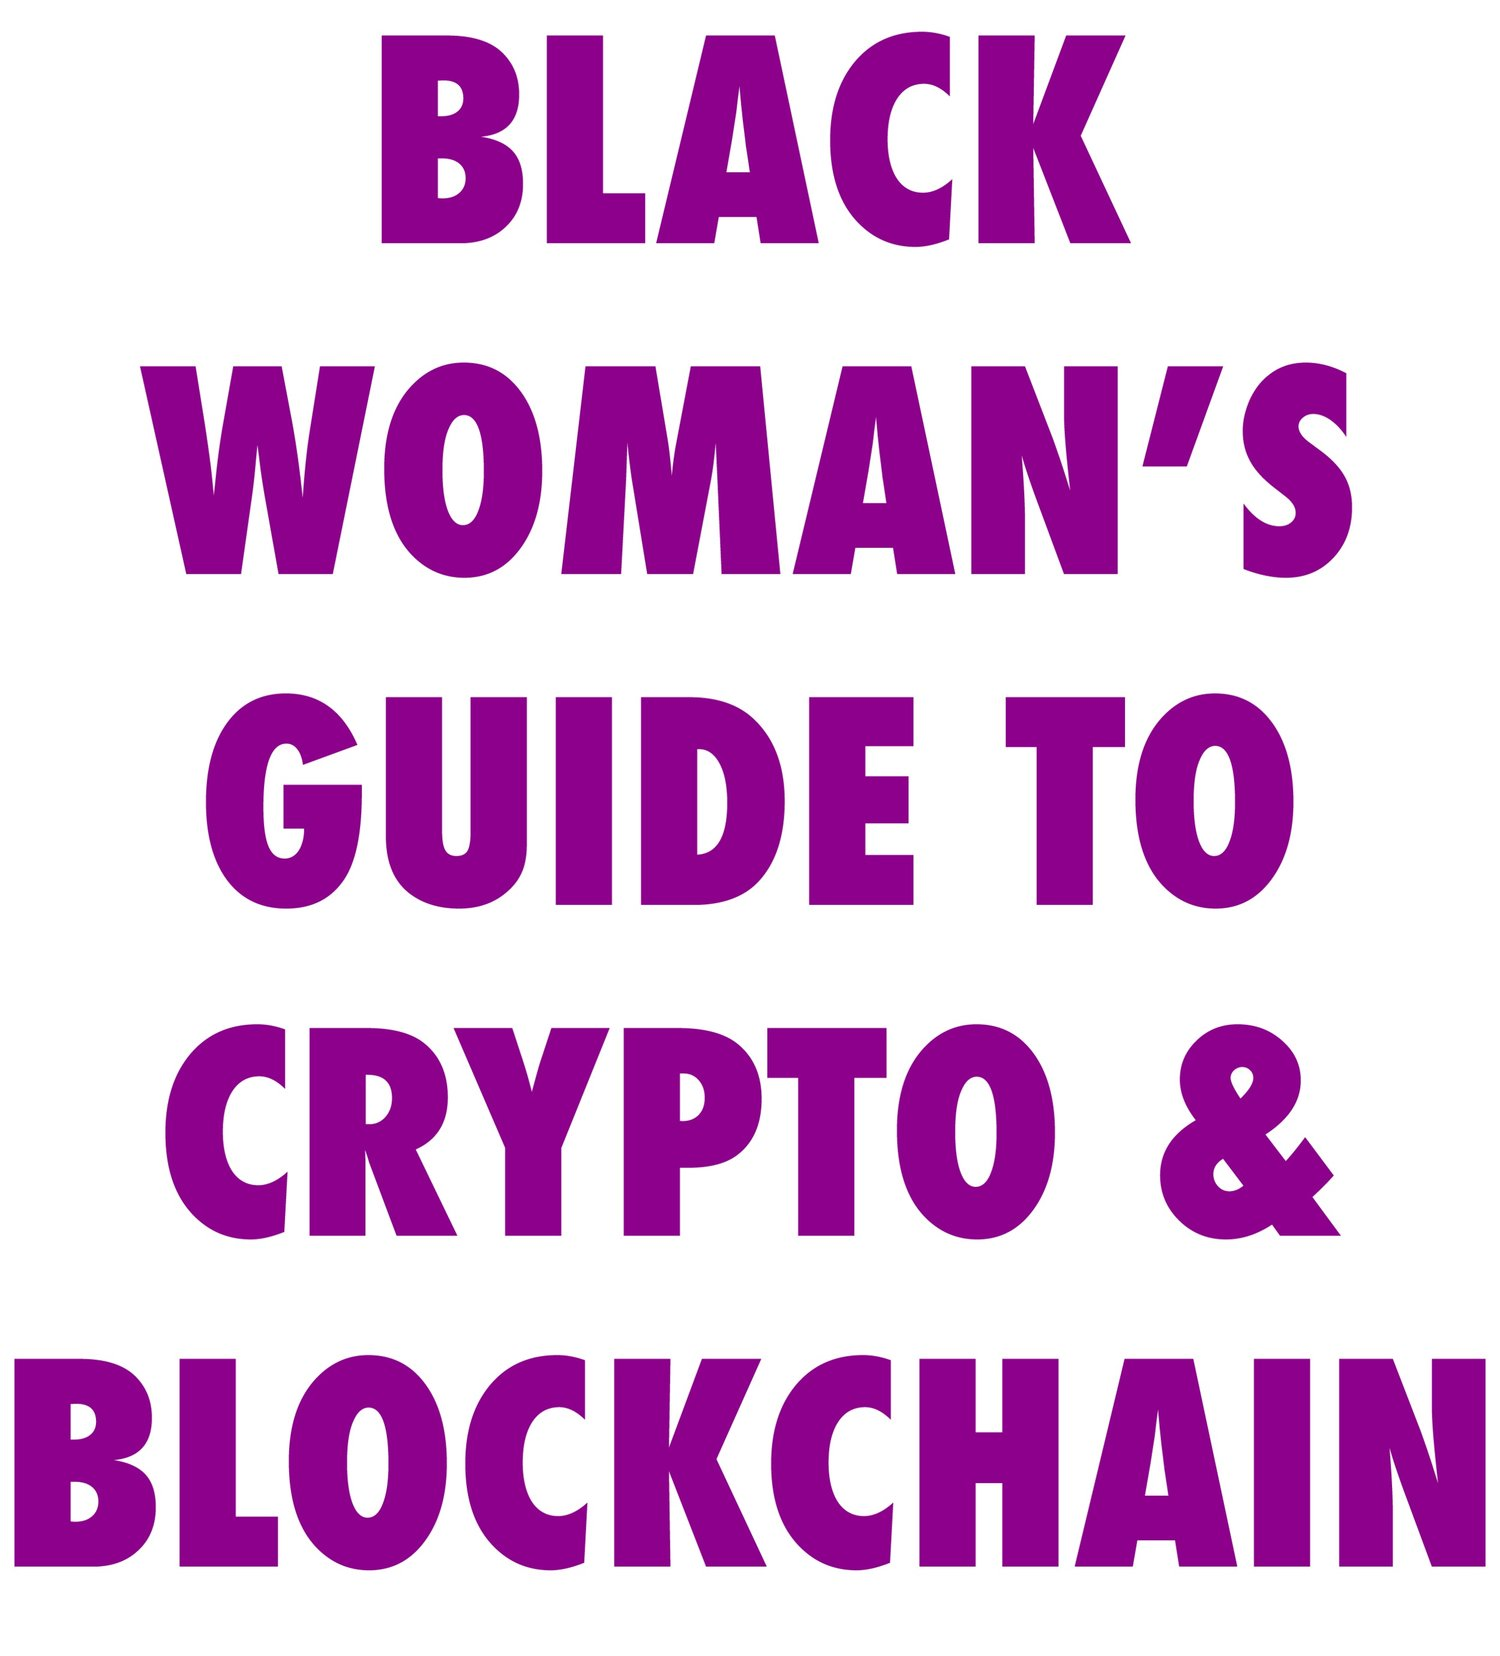 Black Woman's Guide to Crypto and Blockchain